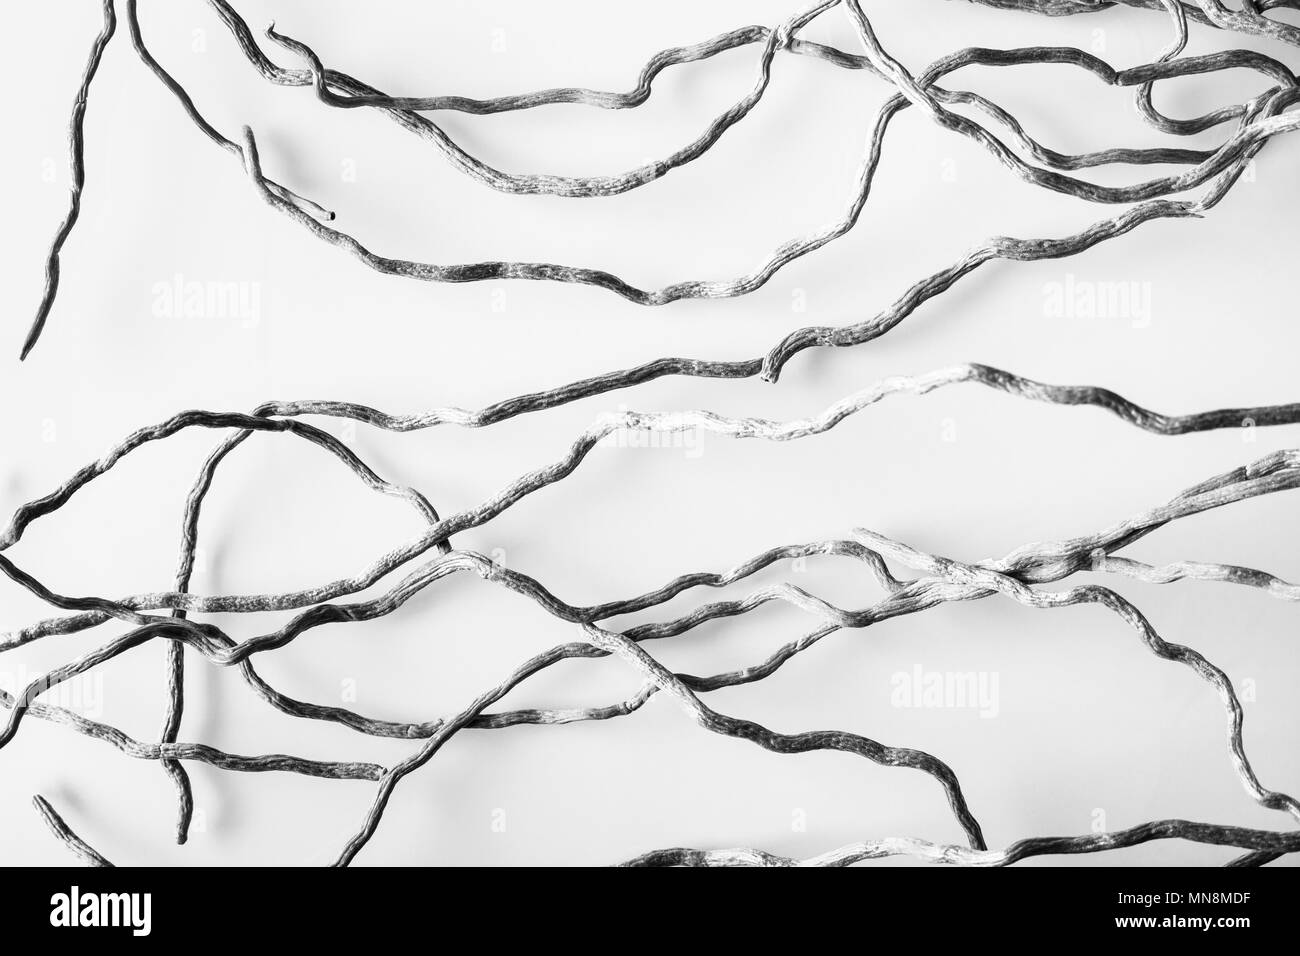 Wavy Lines Black And White Stock Photos Images Alamy